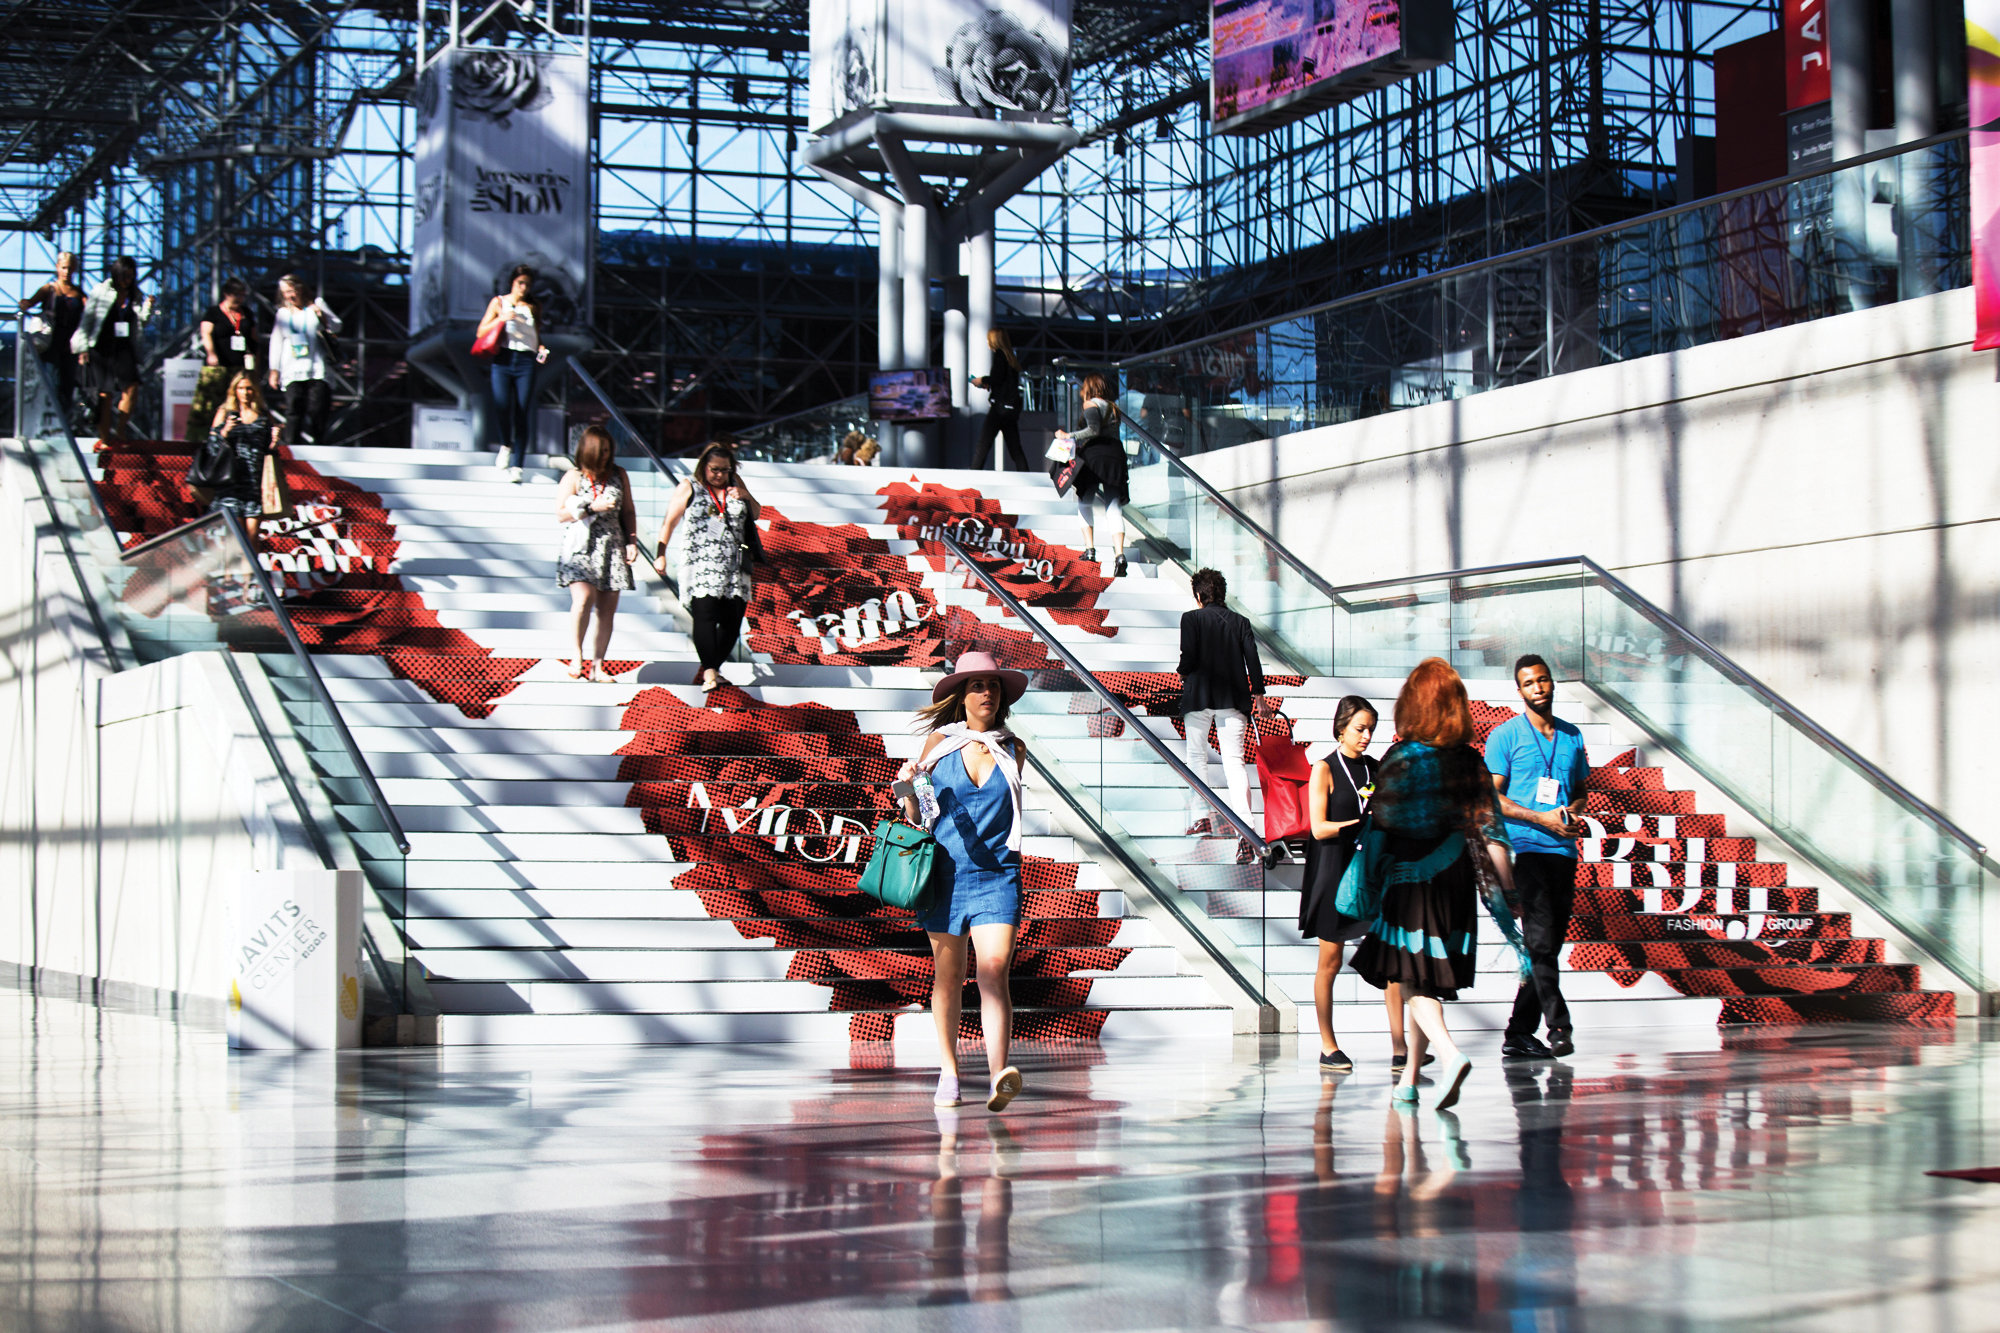 UBM's acquisition of BJI creates a trade-show giant.